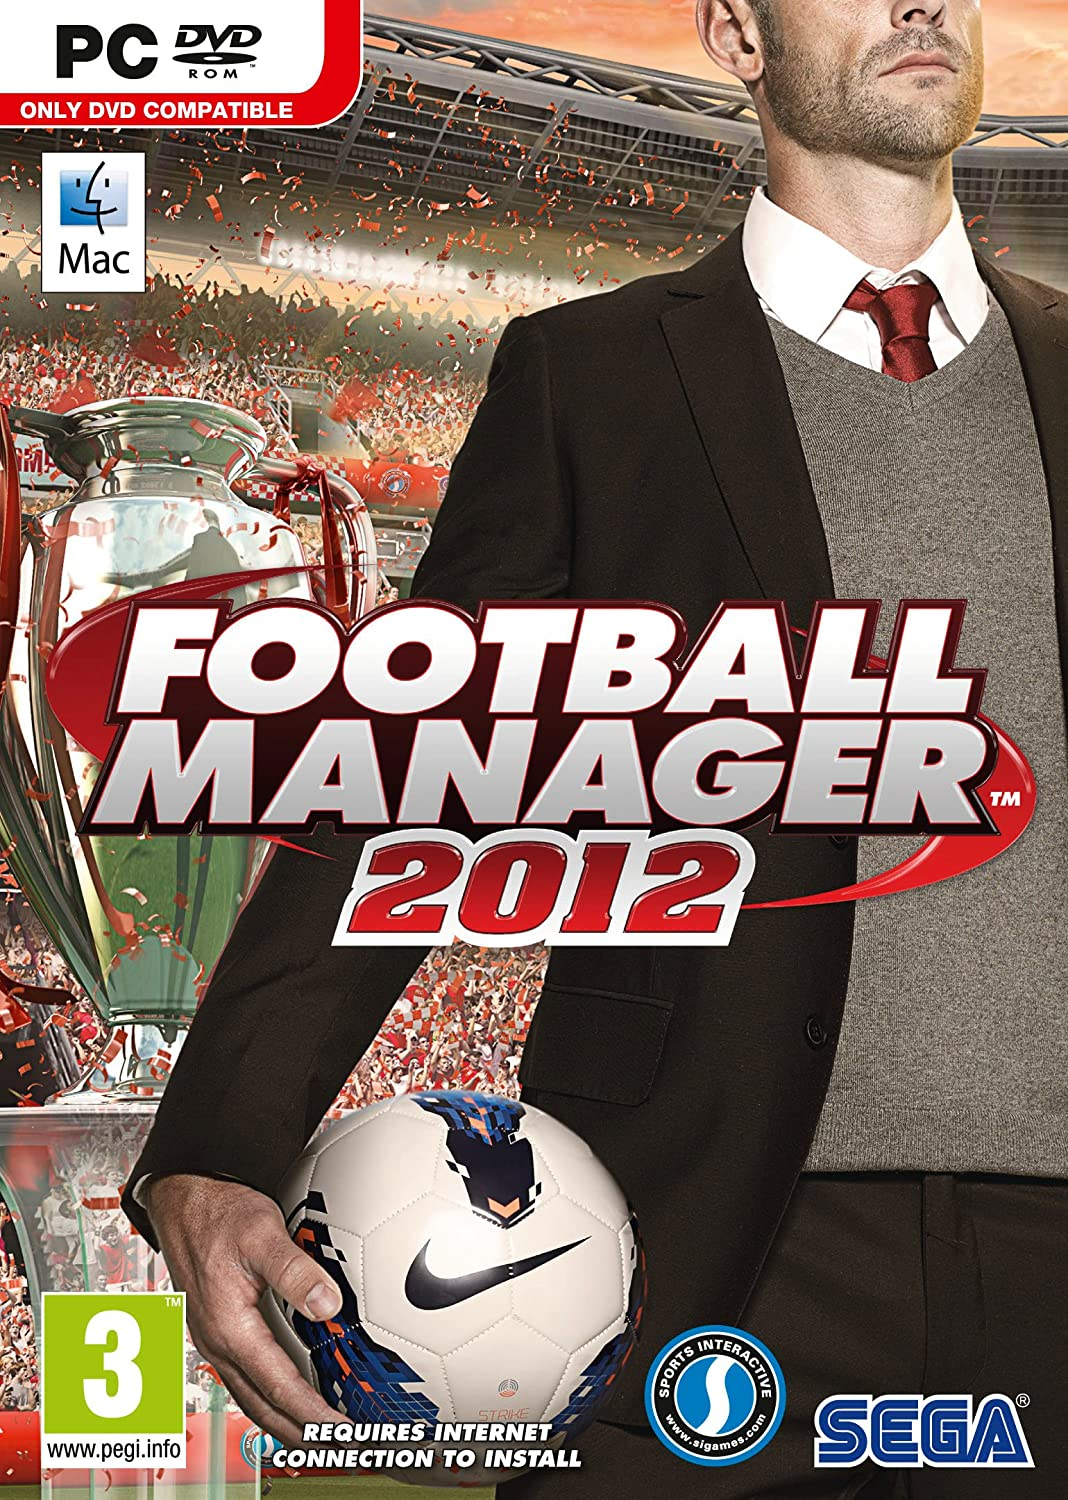 UK-Import]Football Manager 2012 Game PC & MAC: Amazon.de: Games